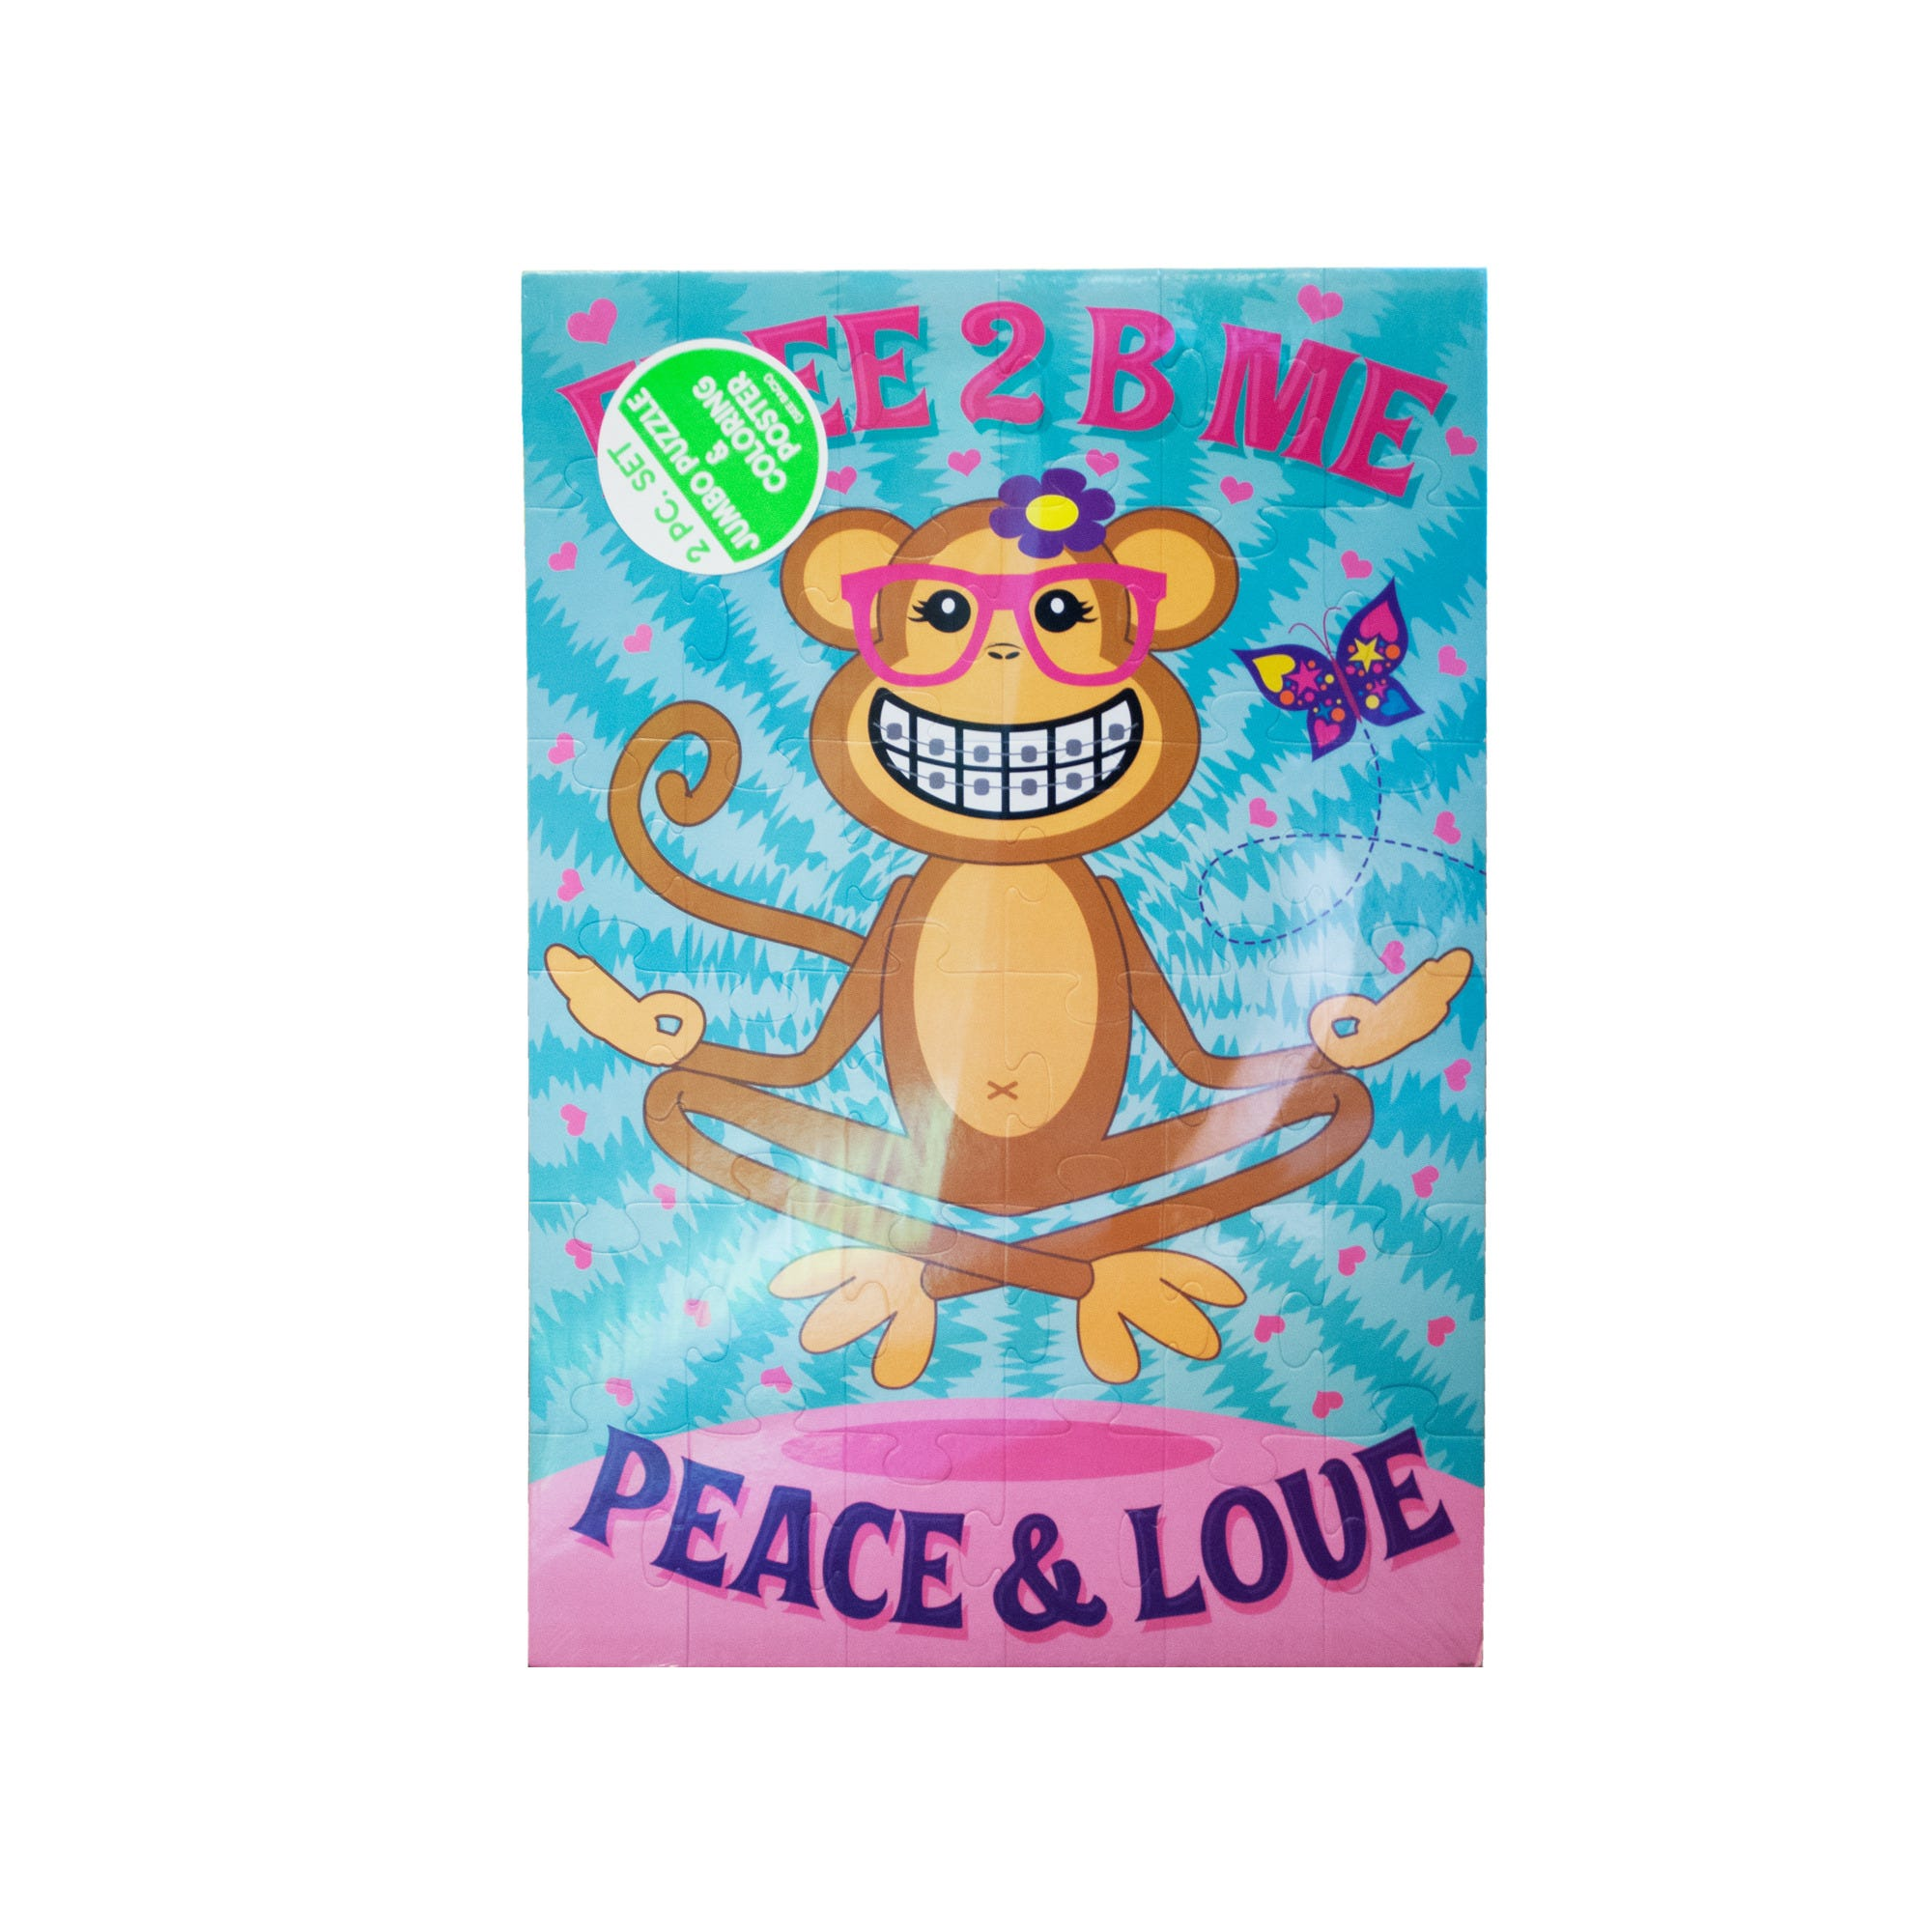 Jumbo Puzzle & Coloring POSTER Set- Qty 18